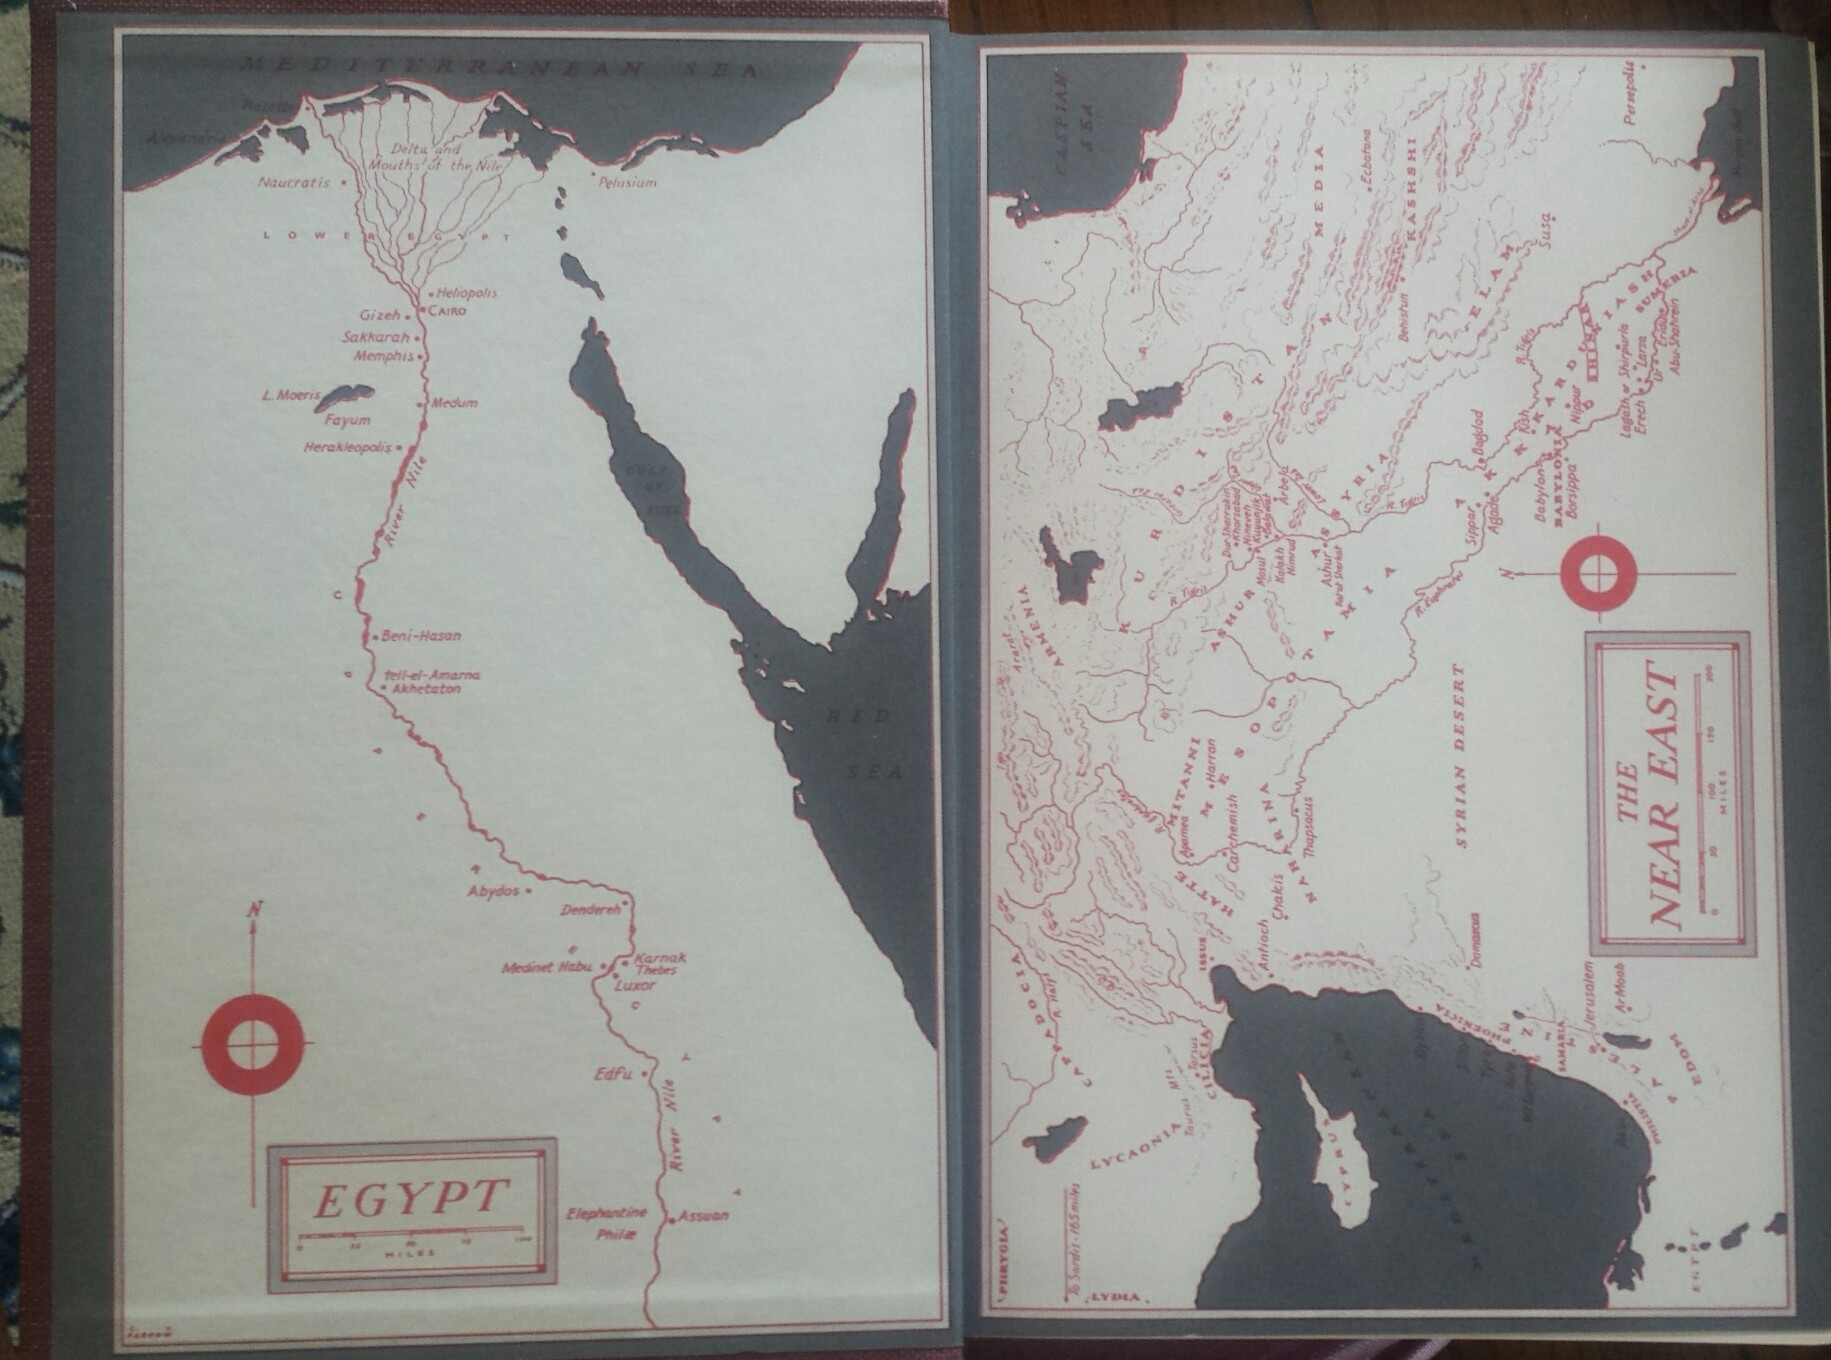 The Story of Civilization Map Will and Ariel Durant